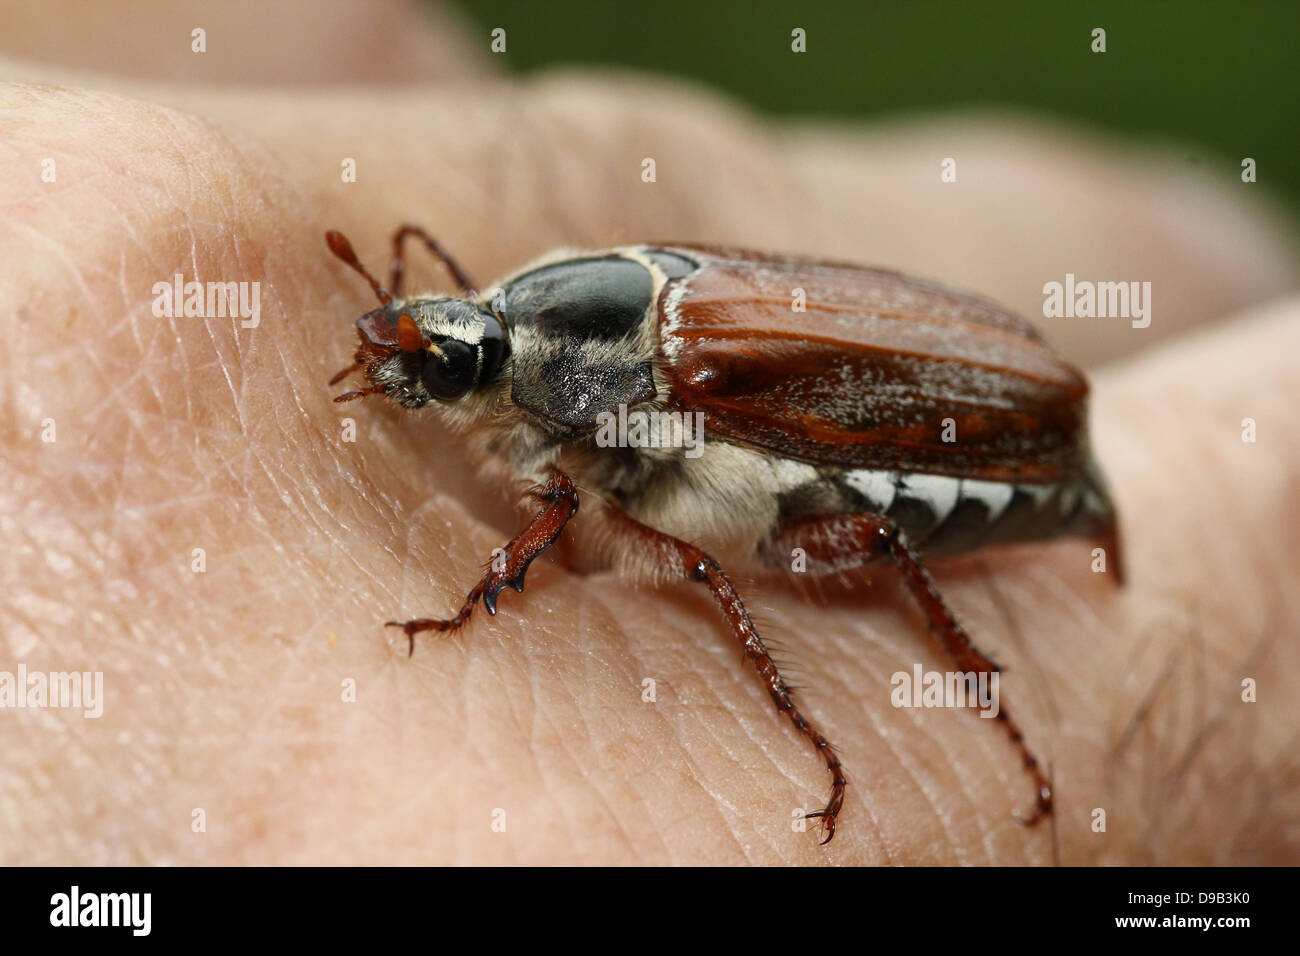 Very detailed close-up of a male Cockchafer a.k.a. May Bug (Melolontha melolontha) posing on hand and finger, 4 images in series Stock Photo